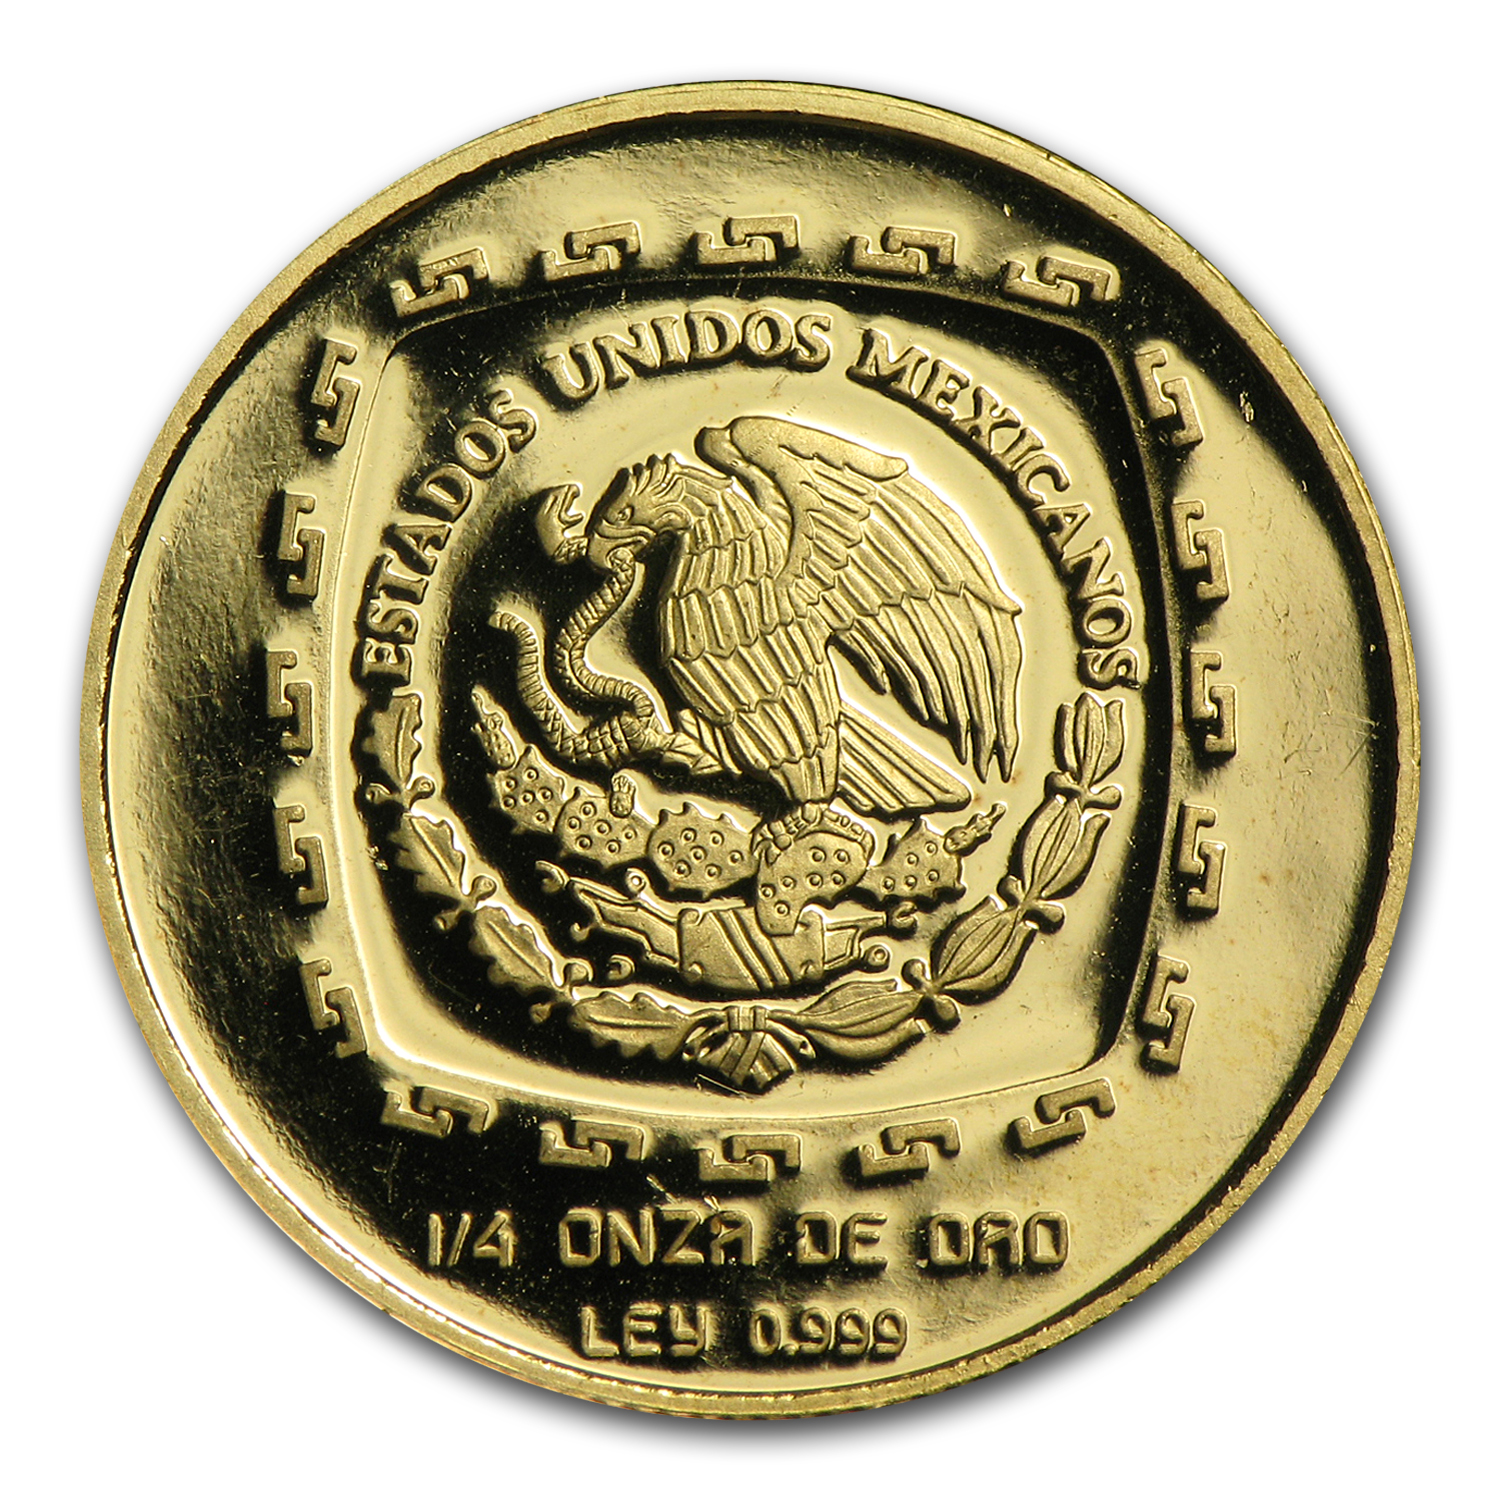 1996 Mexico 25 Pesos Gold Proof Sacerdote